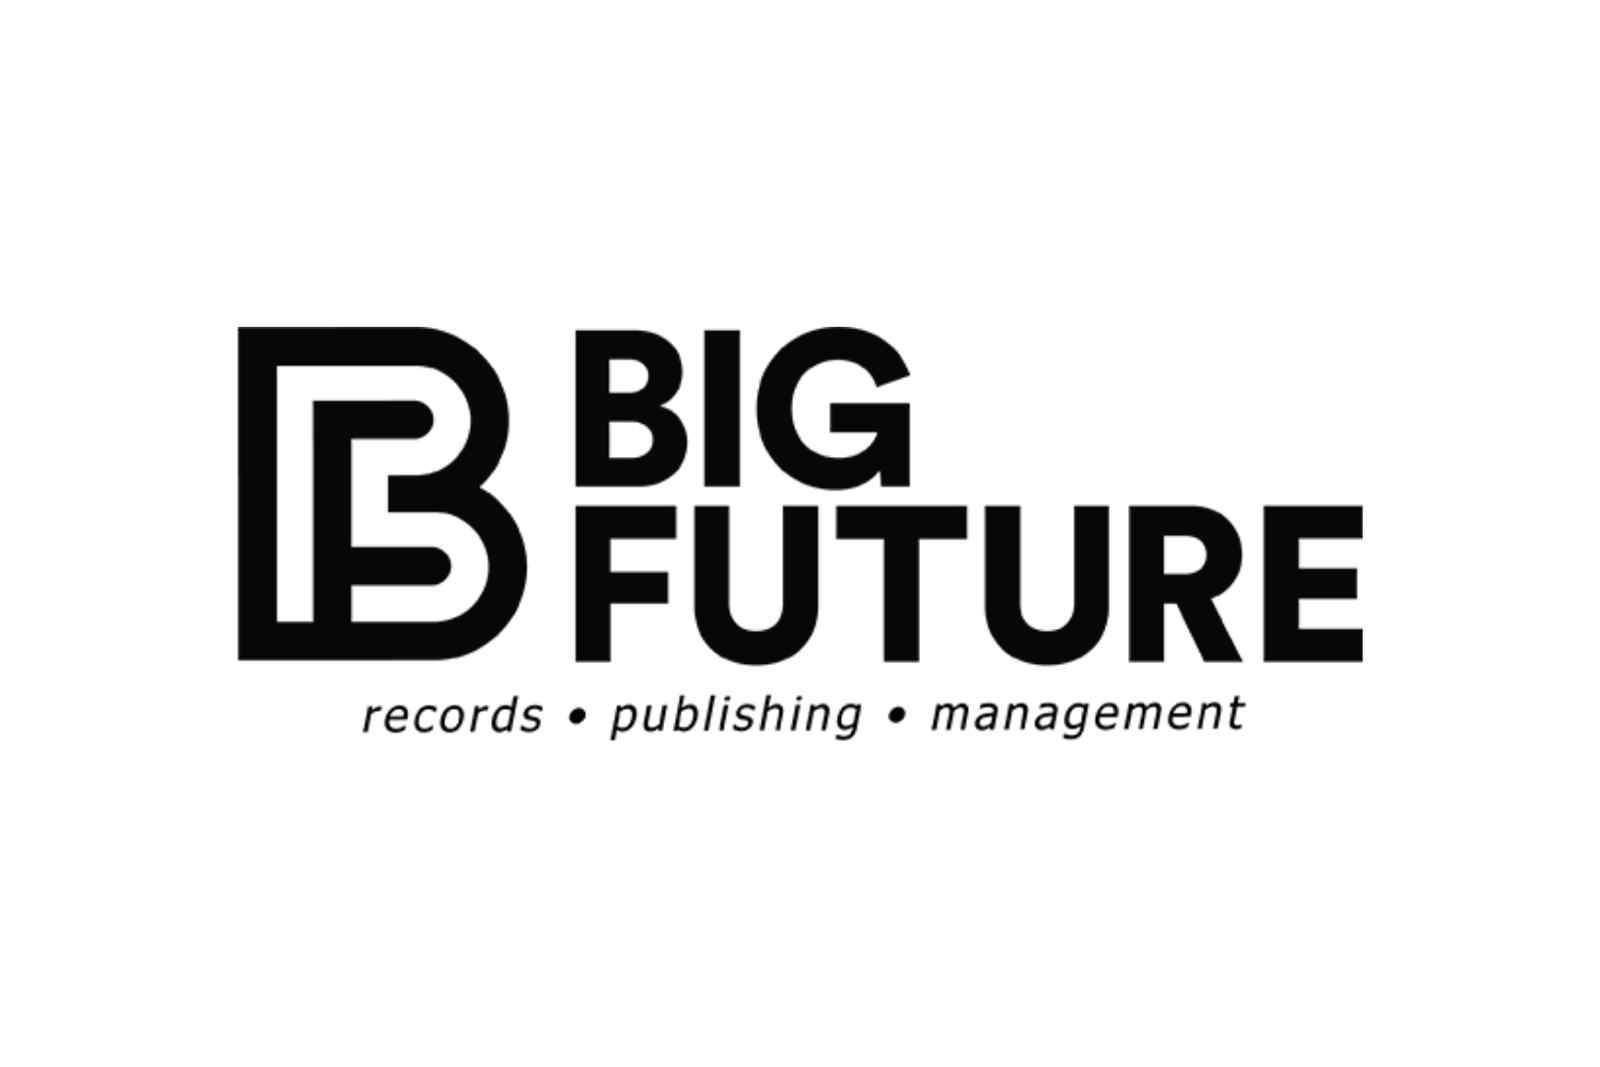 Big Future Music Group Launches In Nashville, Announces Flagship Artist Abby Robertson